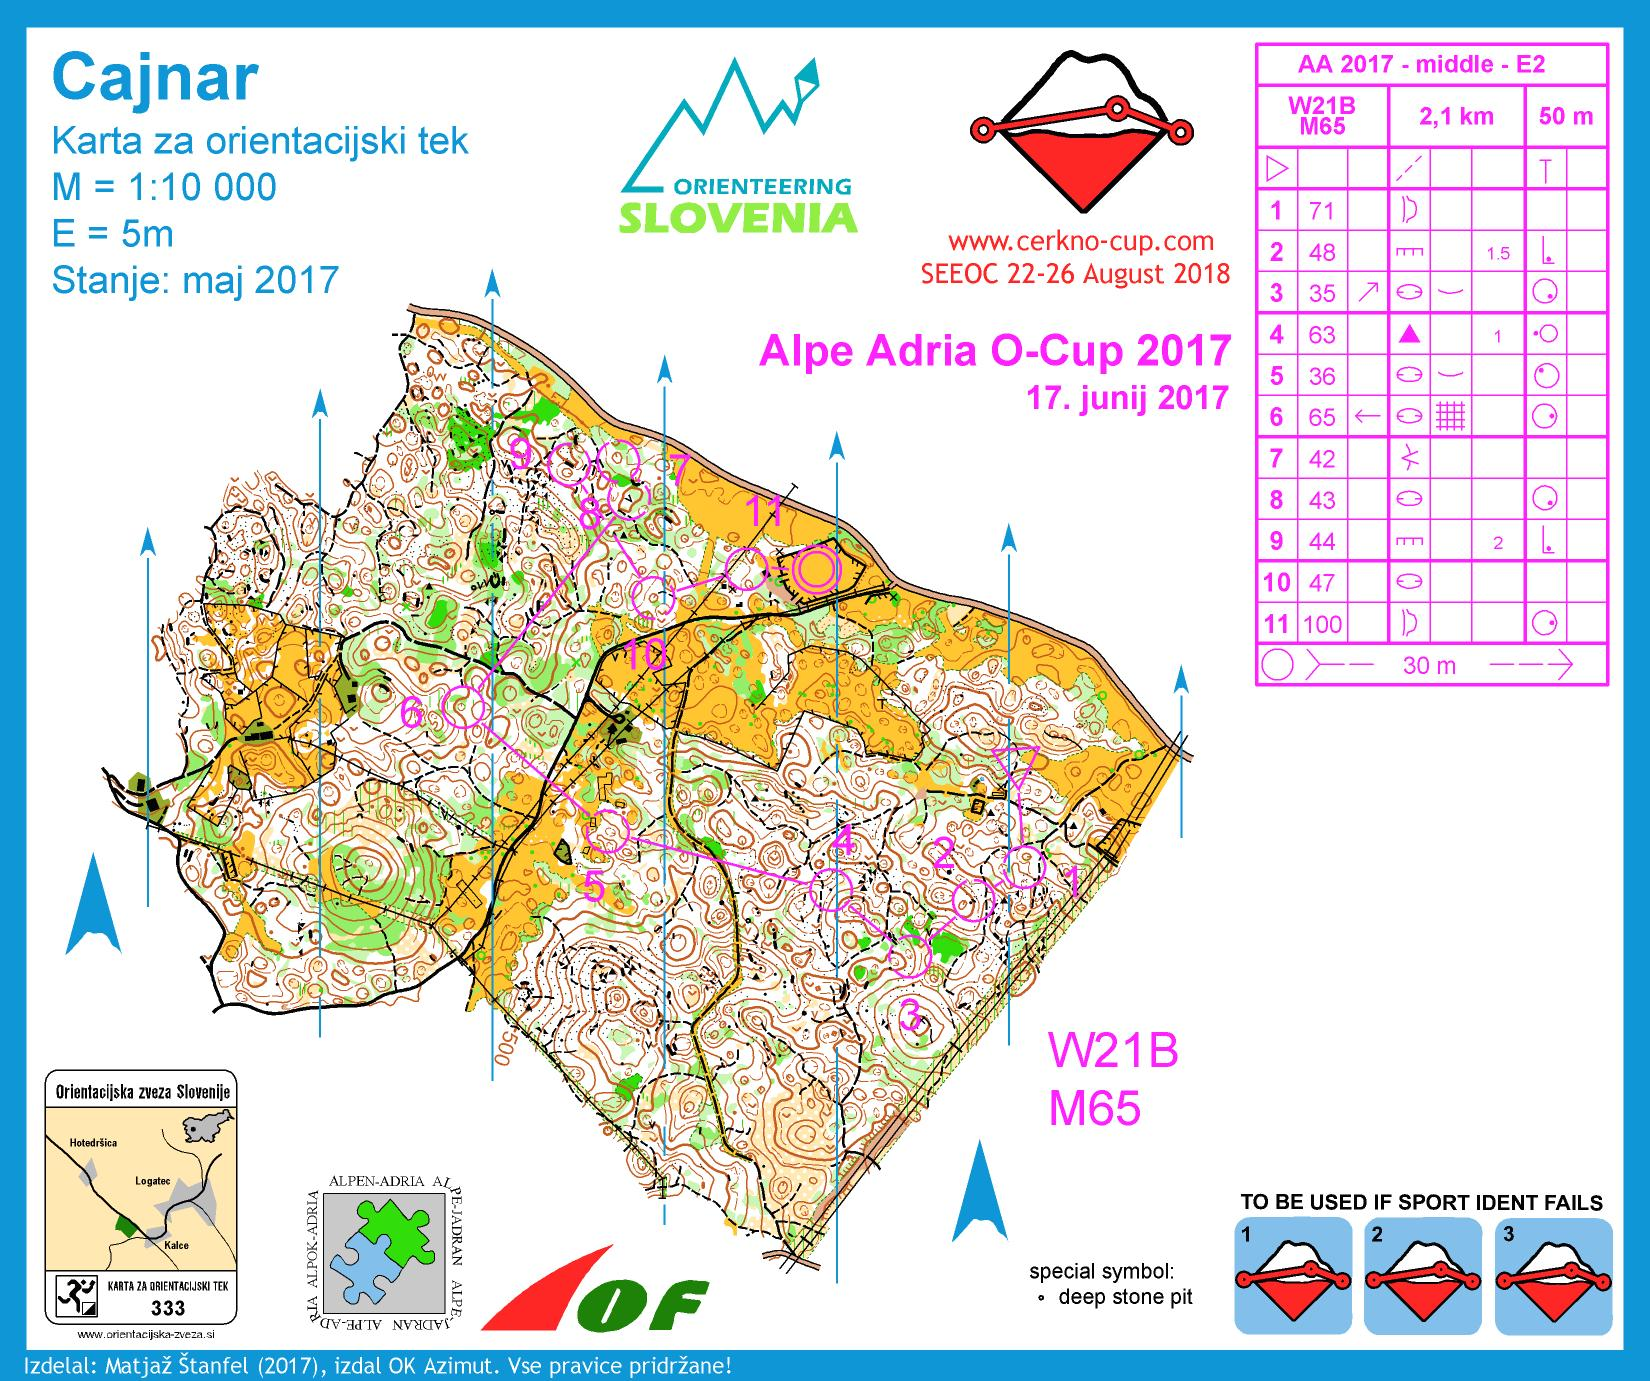 Alpe Adria Orienteering Cup - W21B, M65 - middle distance (17-06-2017)